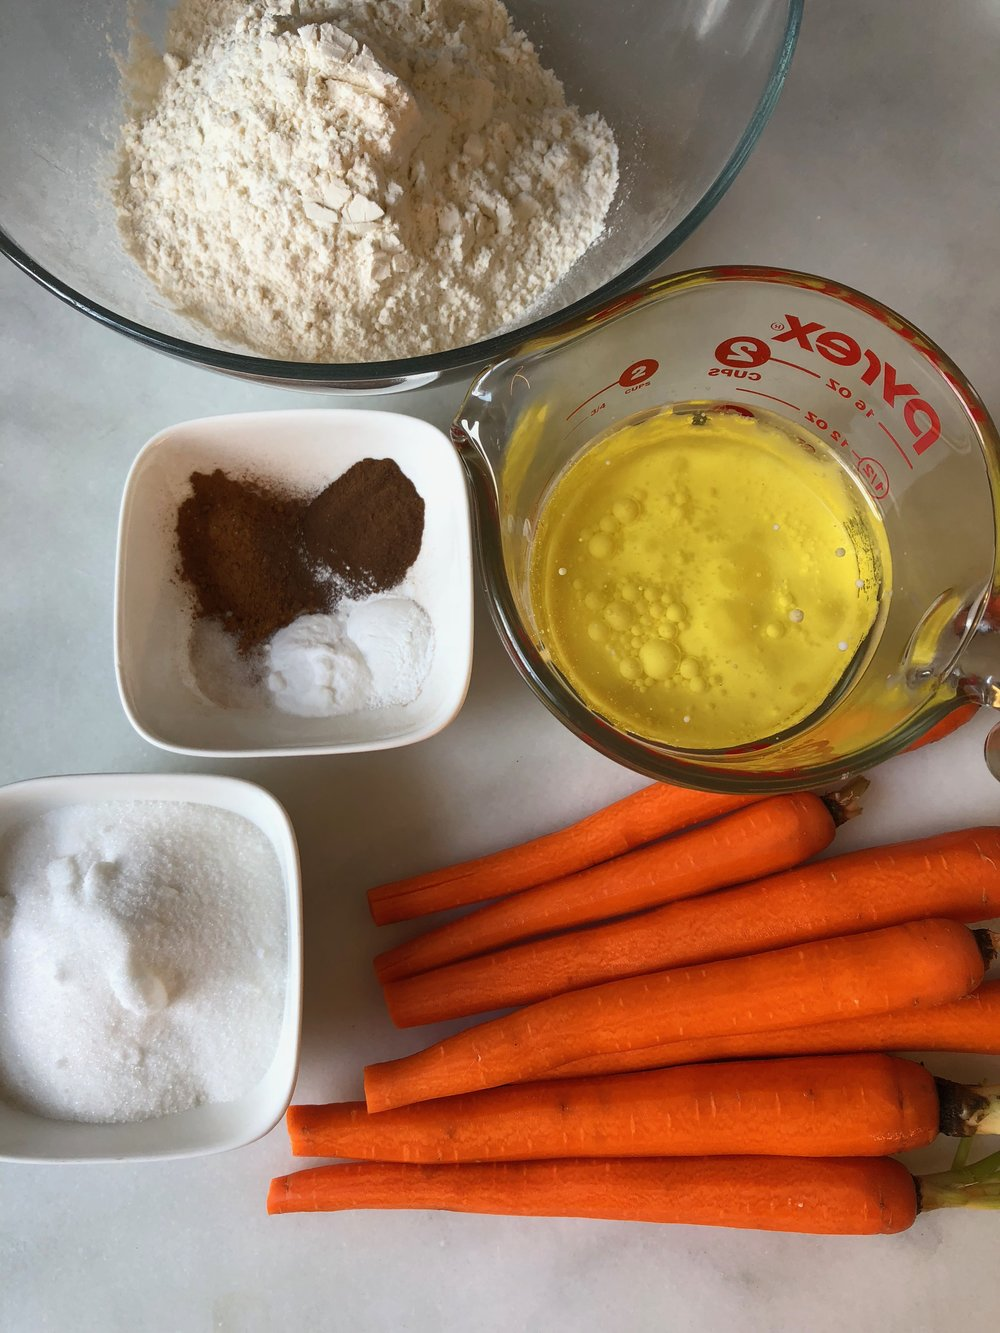 nut free carrot cake ingredients